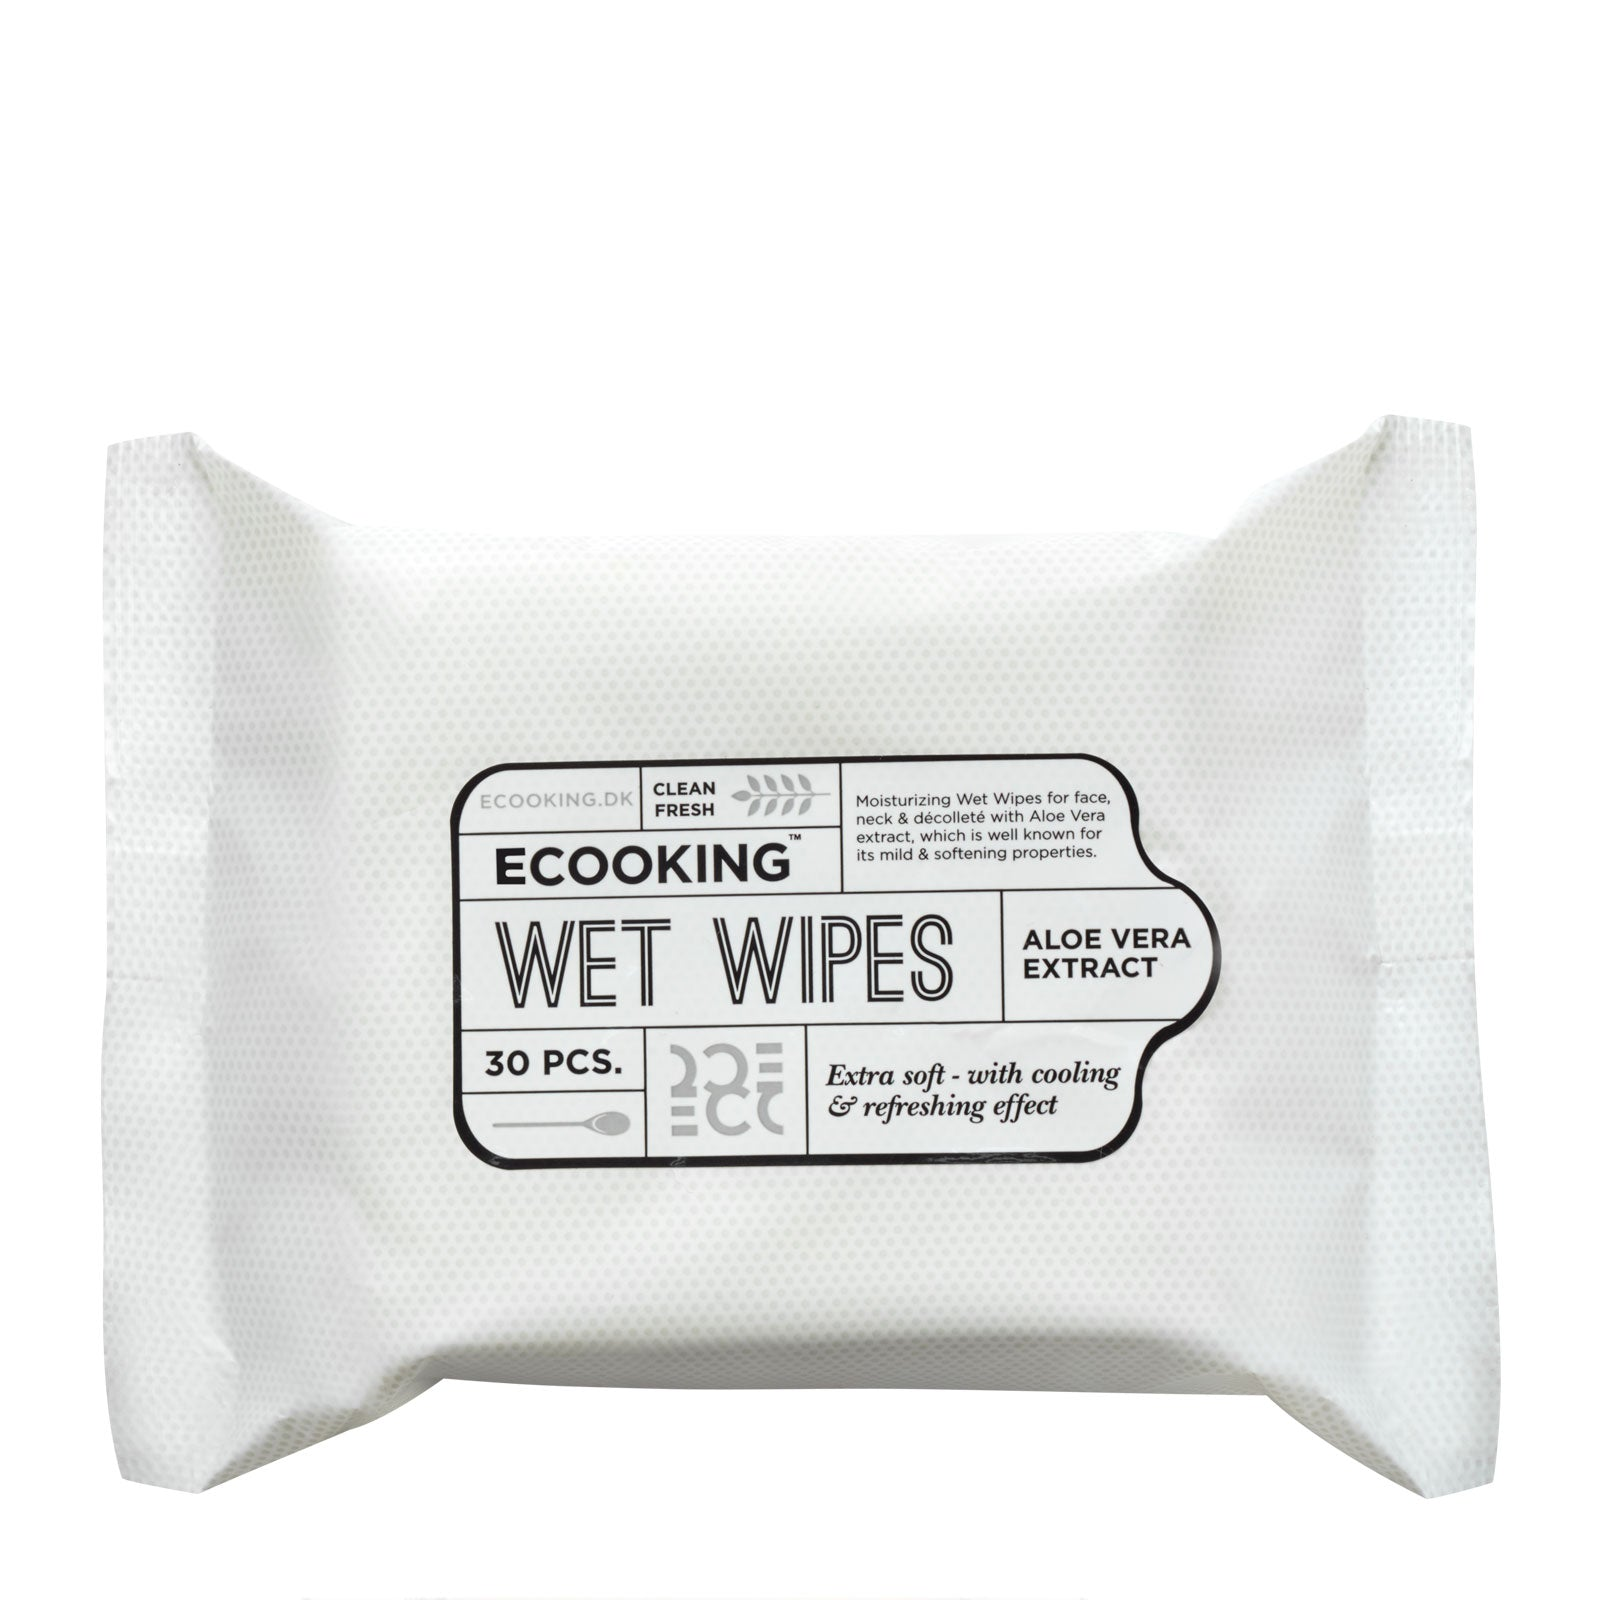 Ecooking™ Wet Wipes x 30 pcs.